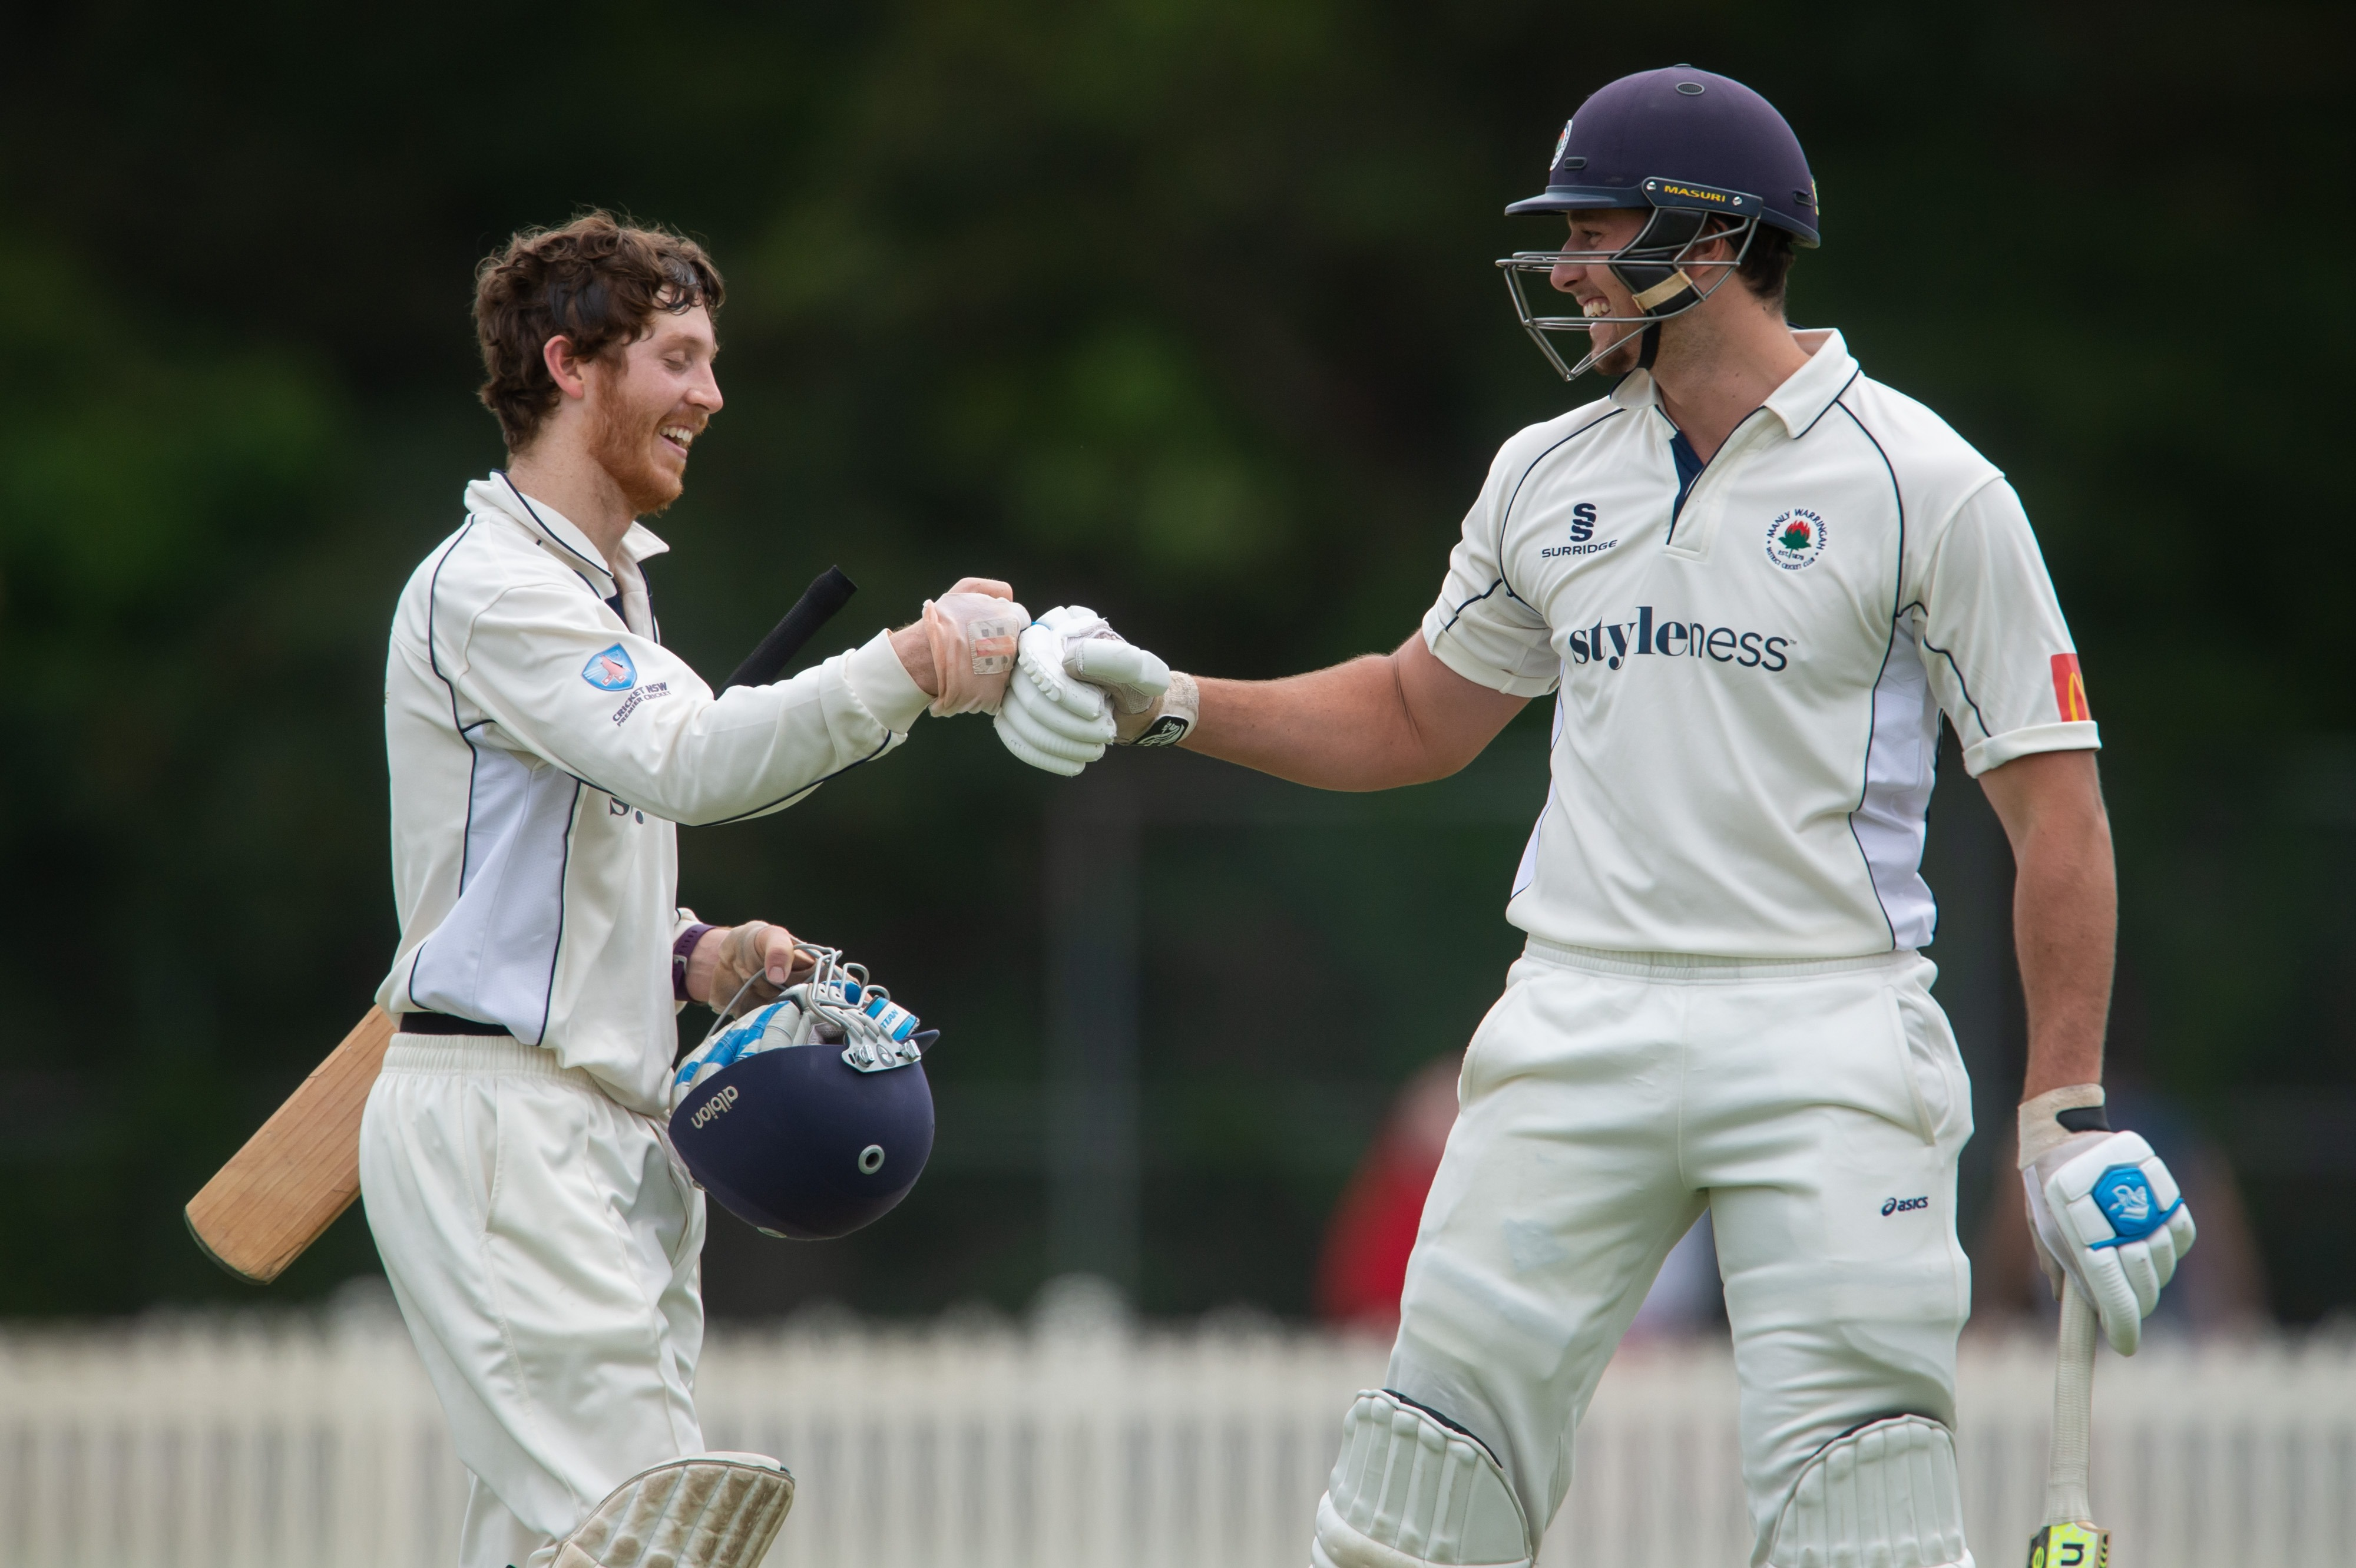 Will Akhurst after hitting his first ball for 6 to end the innings